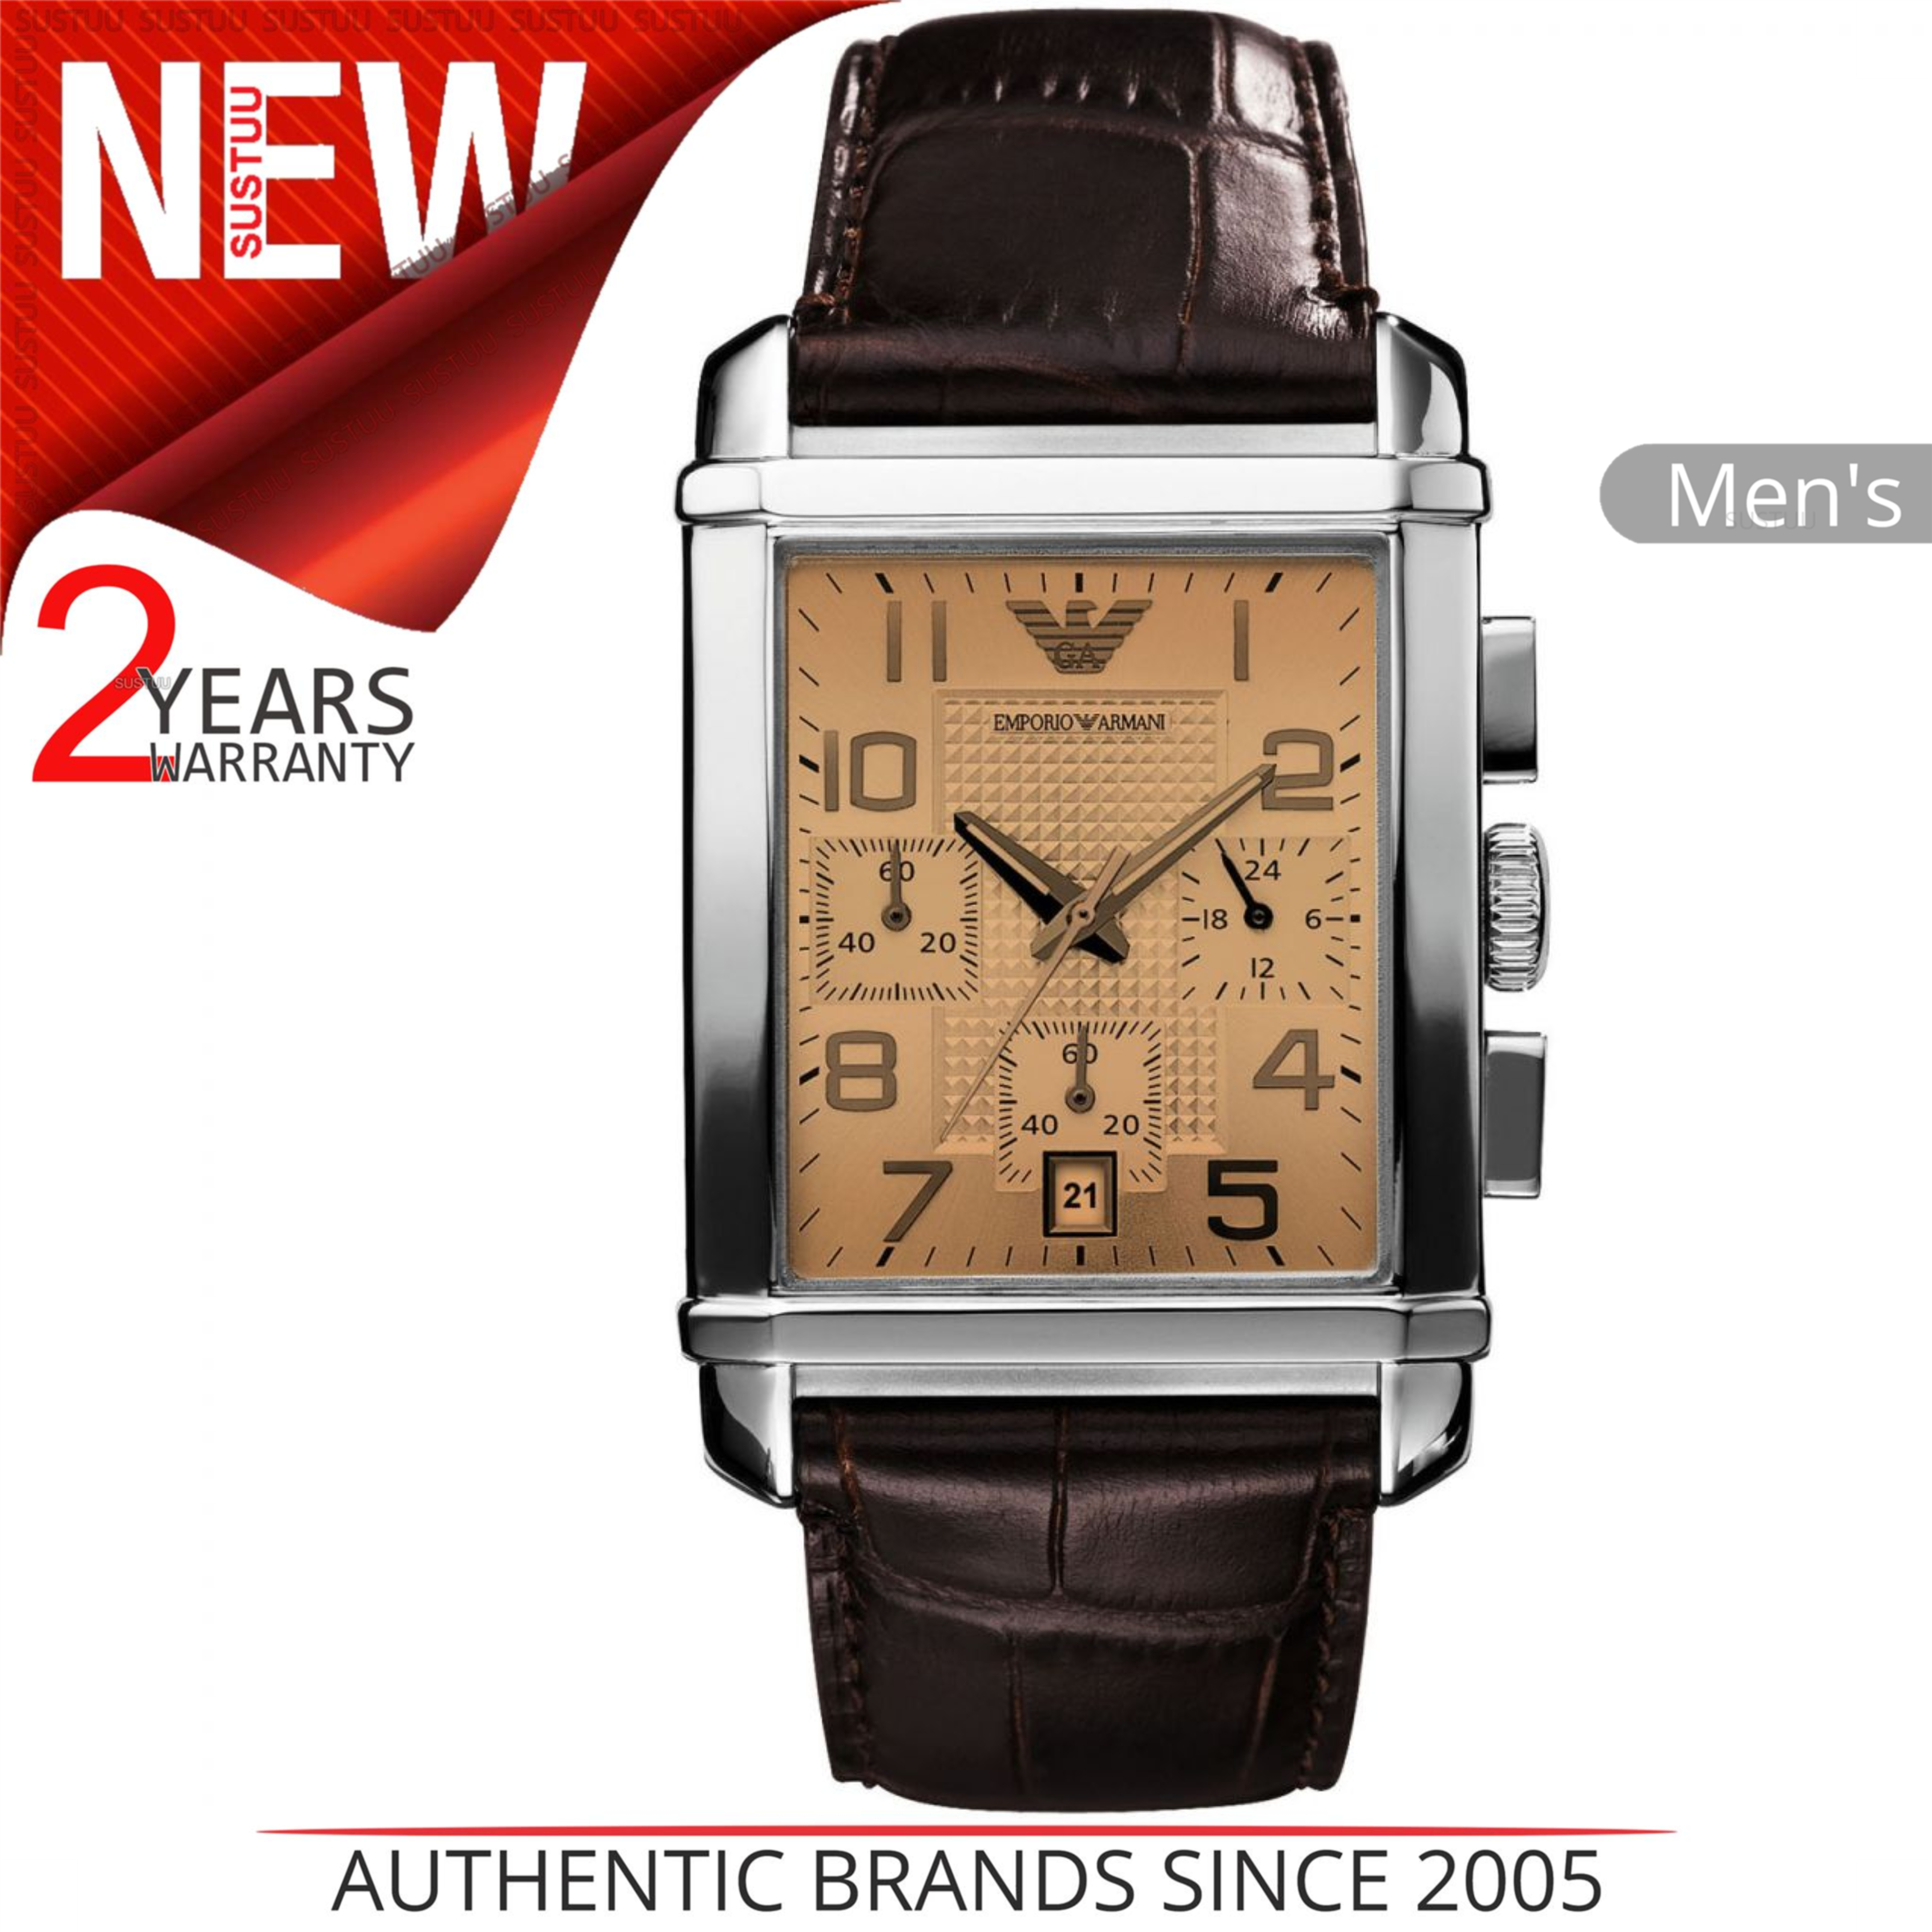 88507b449a9 Details about Emporio Armani Classic Men s Watch│Chronograph Brown Dial│ Leather Starp│AR0337